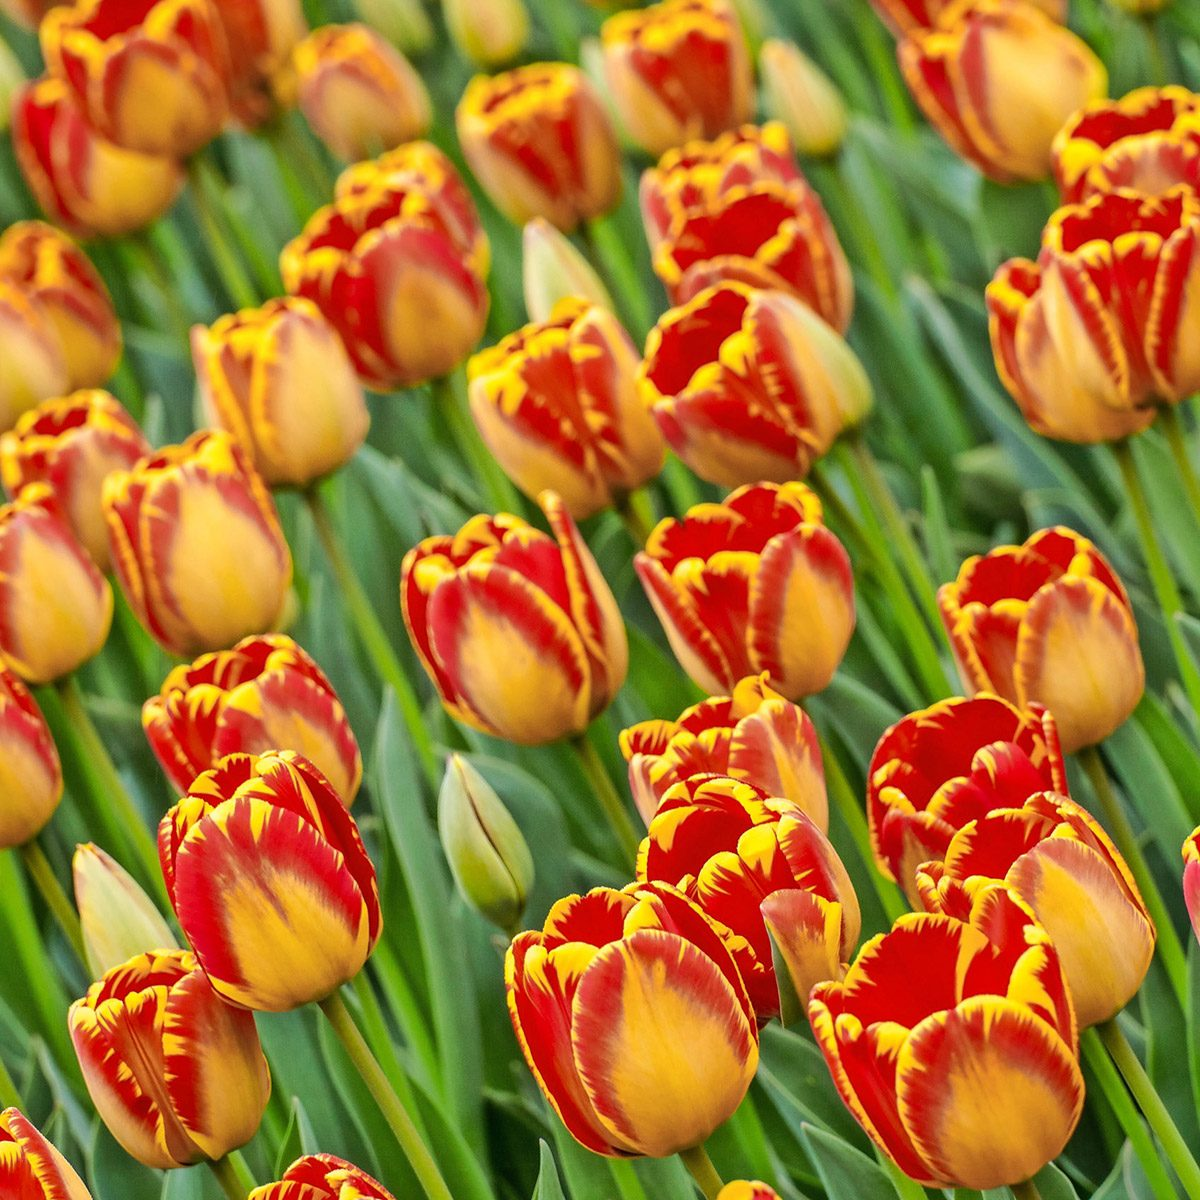 Tulip 'Banja Luka' has huge yellow and orange-red flowers that bear up beautifully in rugged spring weather.